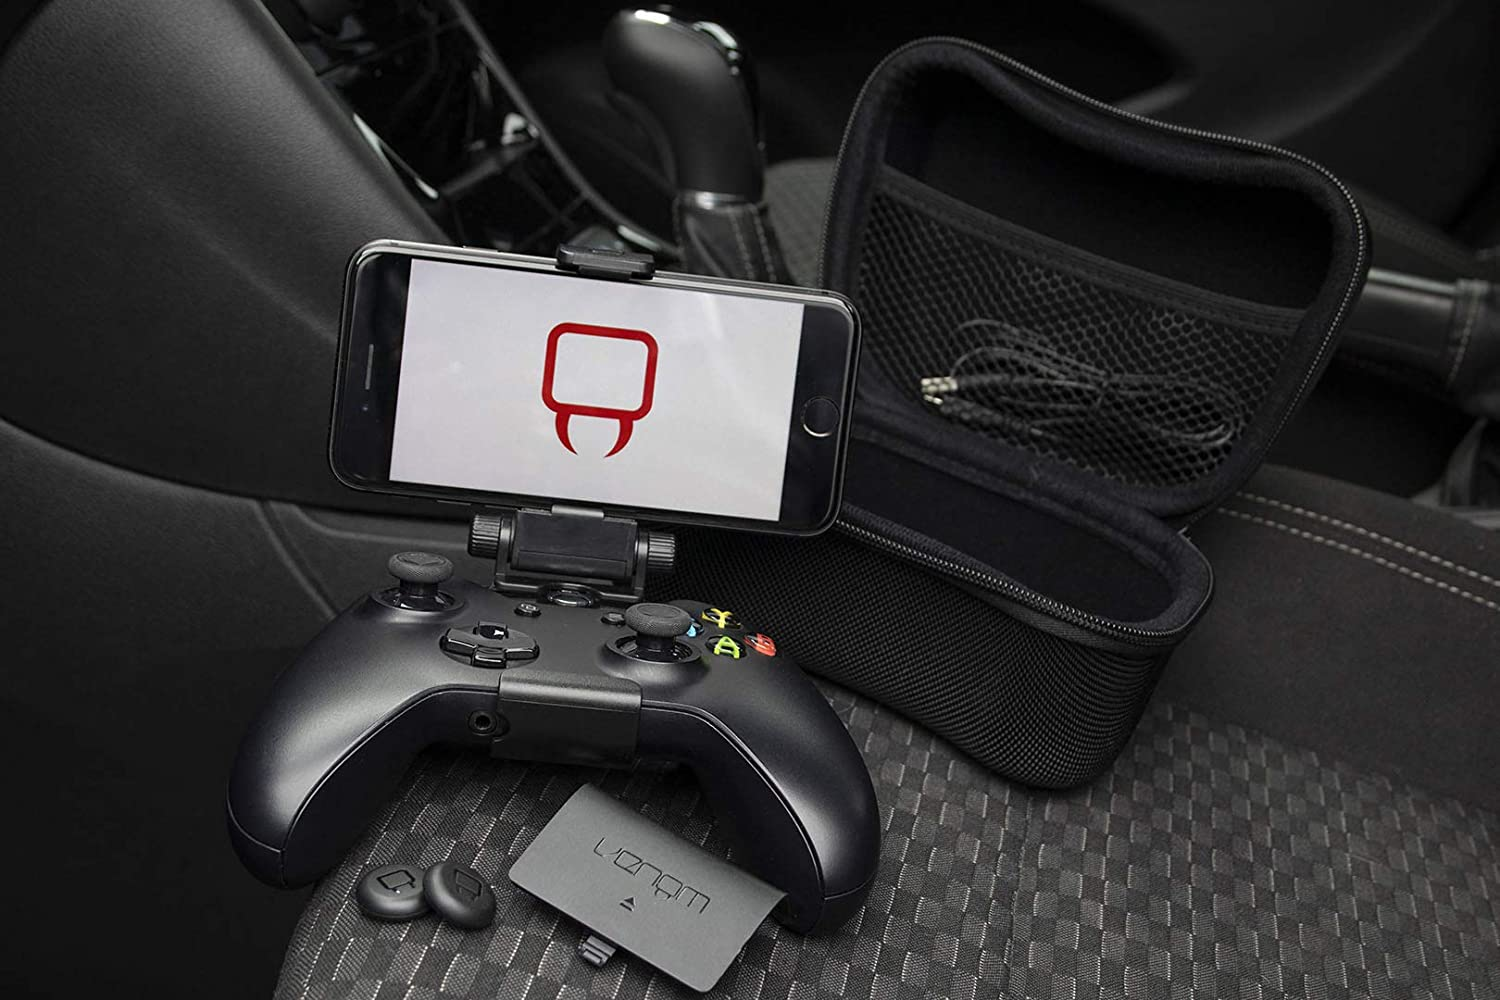 Xbox One // PC Venom Project xCloud Mobile Gaming Xbox Controller Clamp